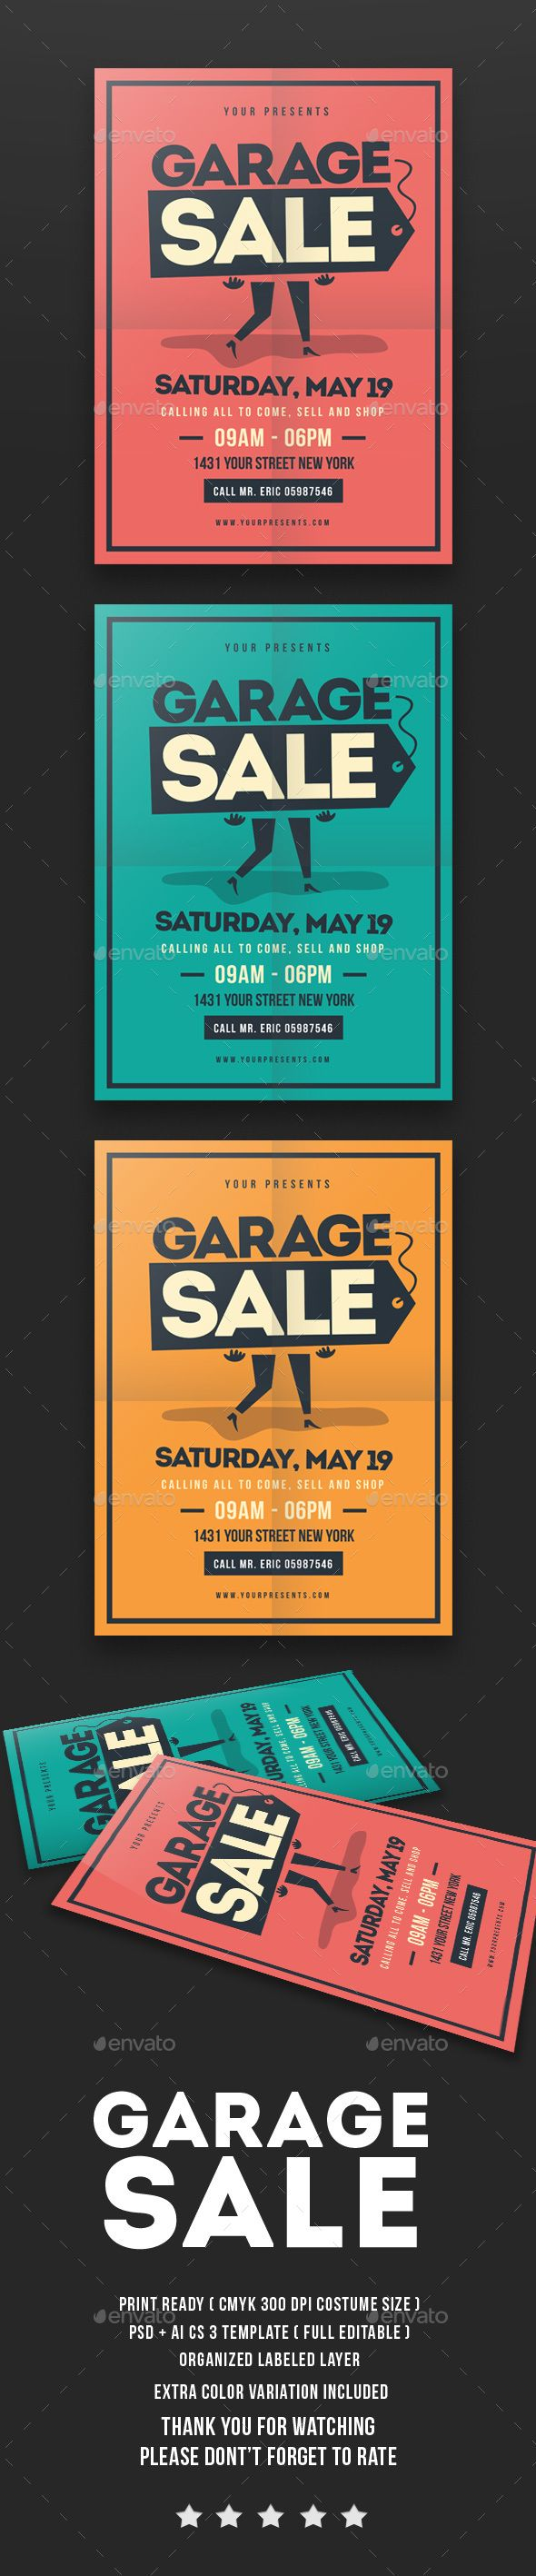 best ideas about poster seasons popular and 9 best ideas about poster seasons popular and flyer template